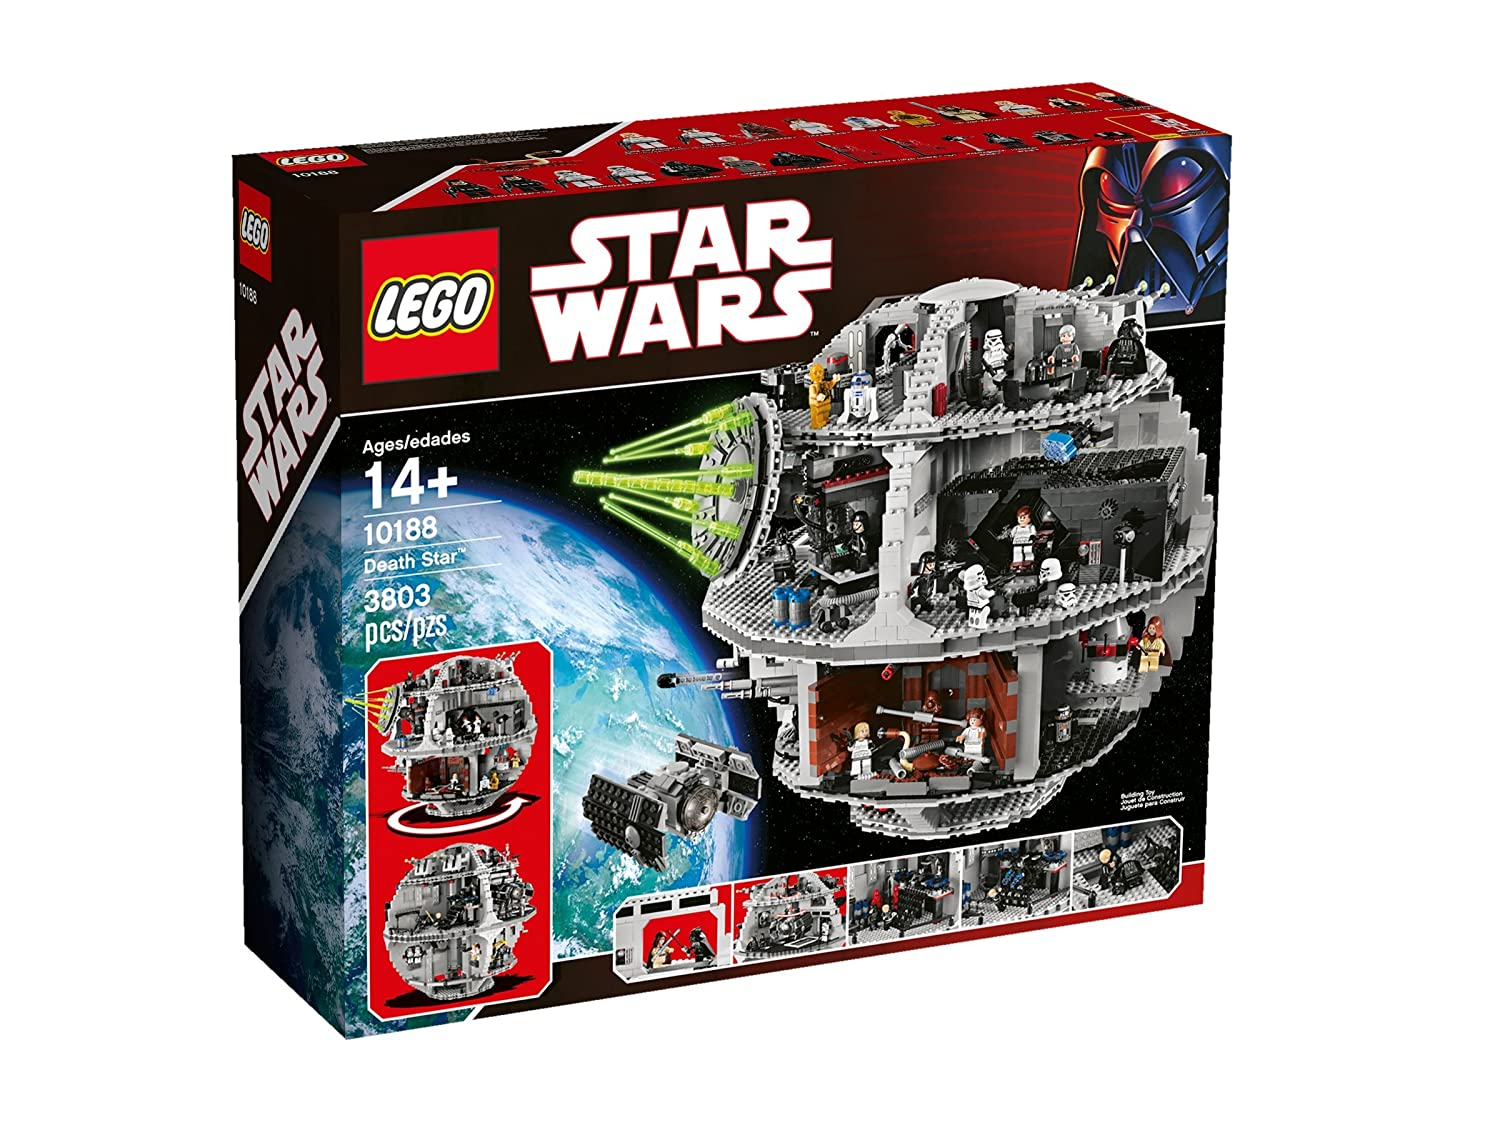 Top 5 Best LEGO Death Star Sets Reviews in 2019 1